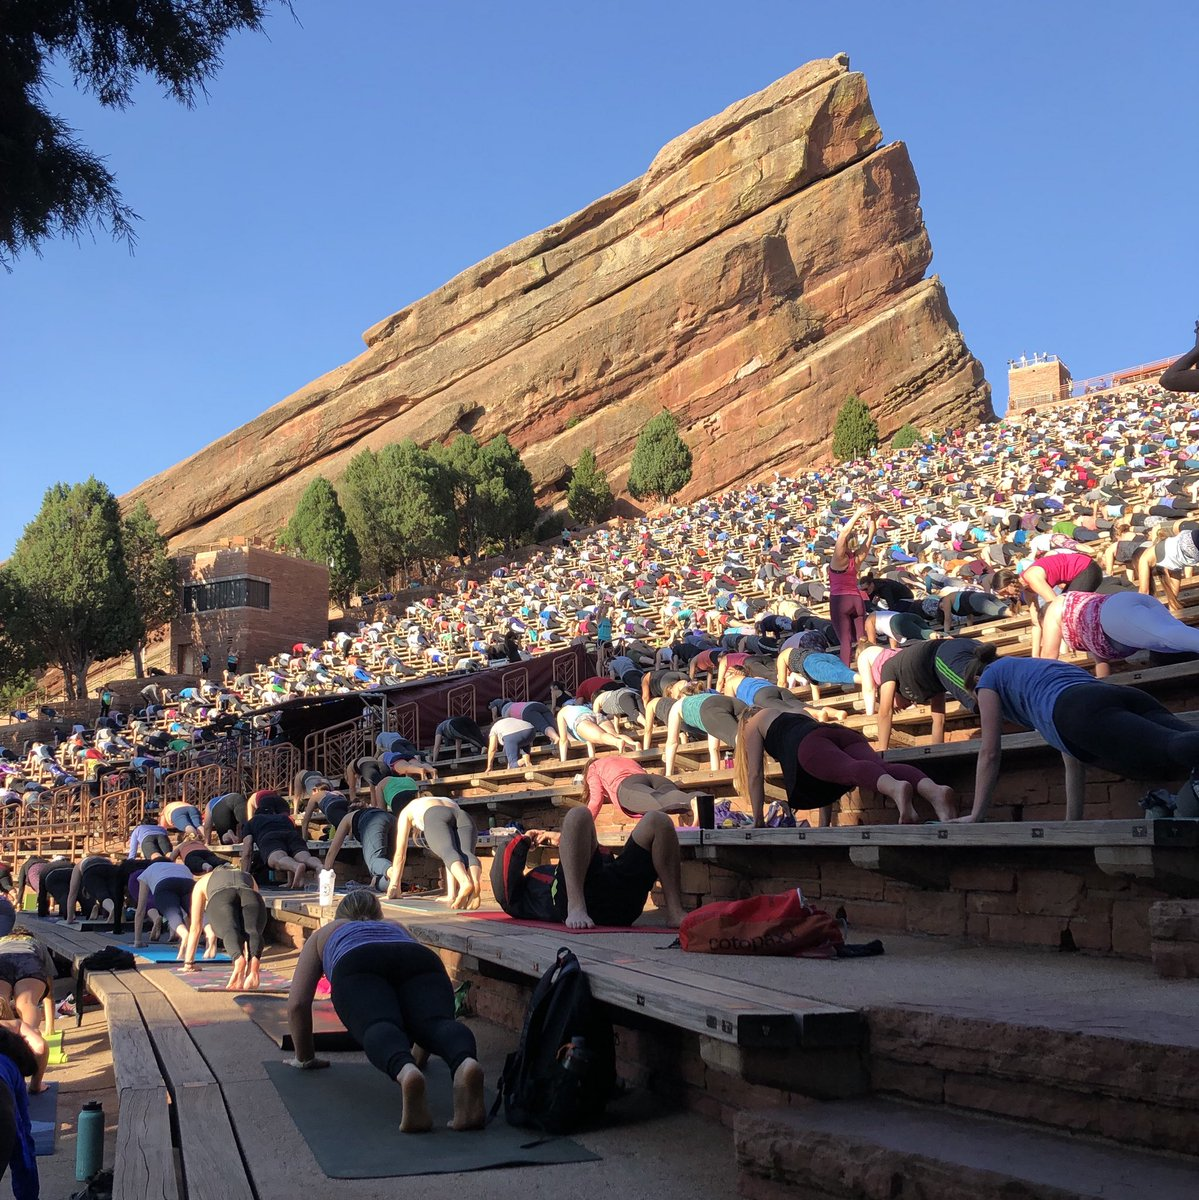 Red Rocks Park And Amphitheatre On Twitter A Perfect Morning For Yoga On The Rocks At Redrocksco